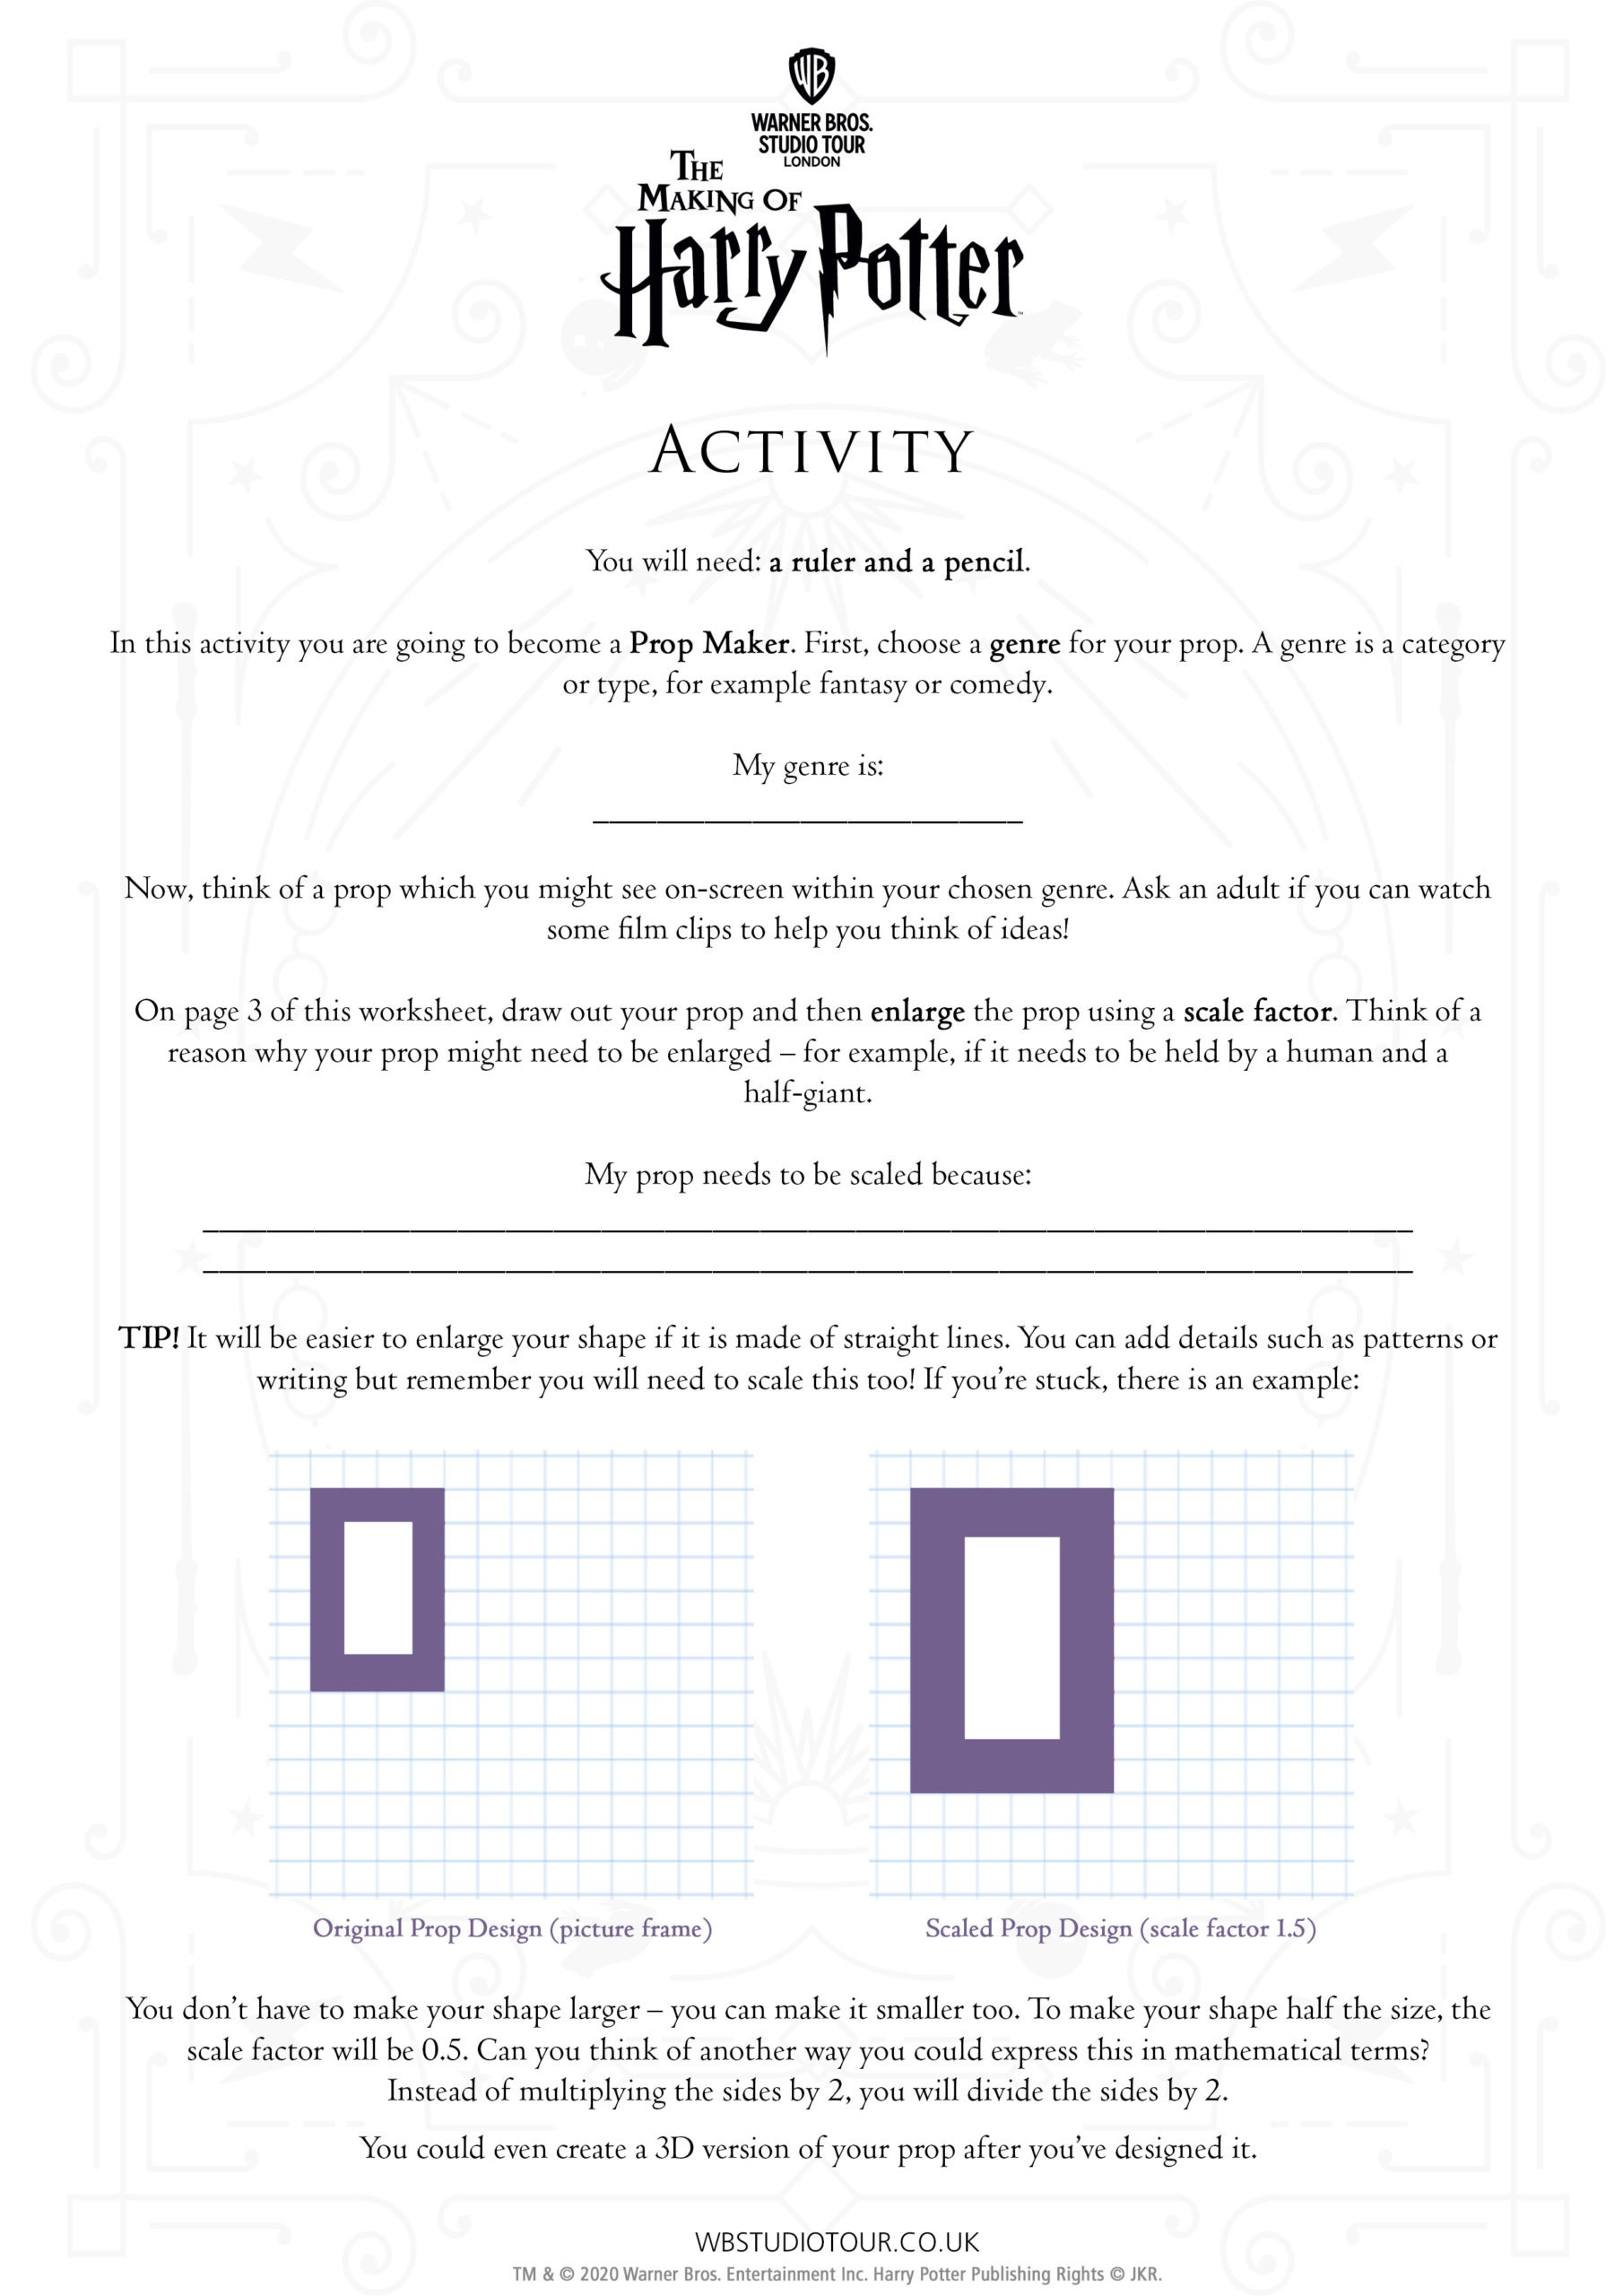 Movie Maths activity worksheets page 2 - Studio Tour at Home